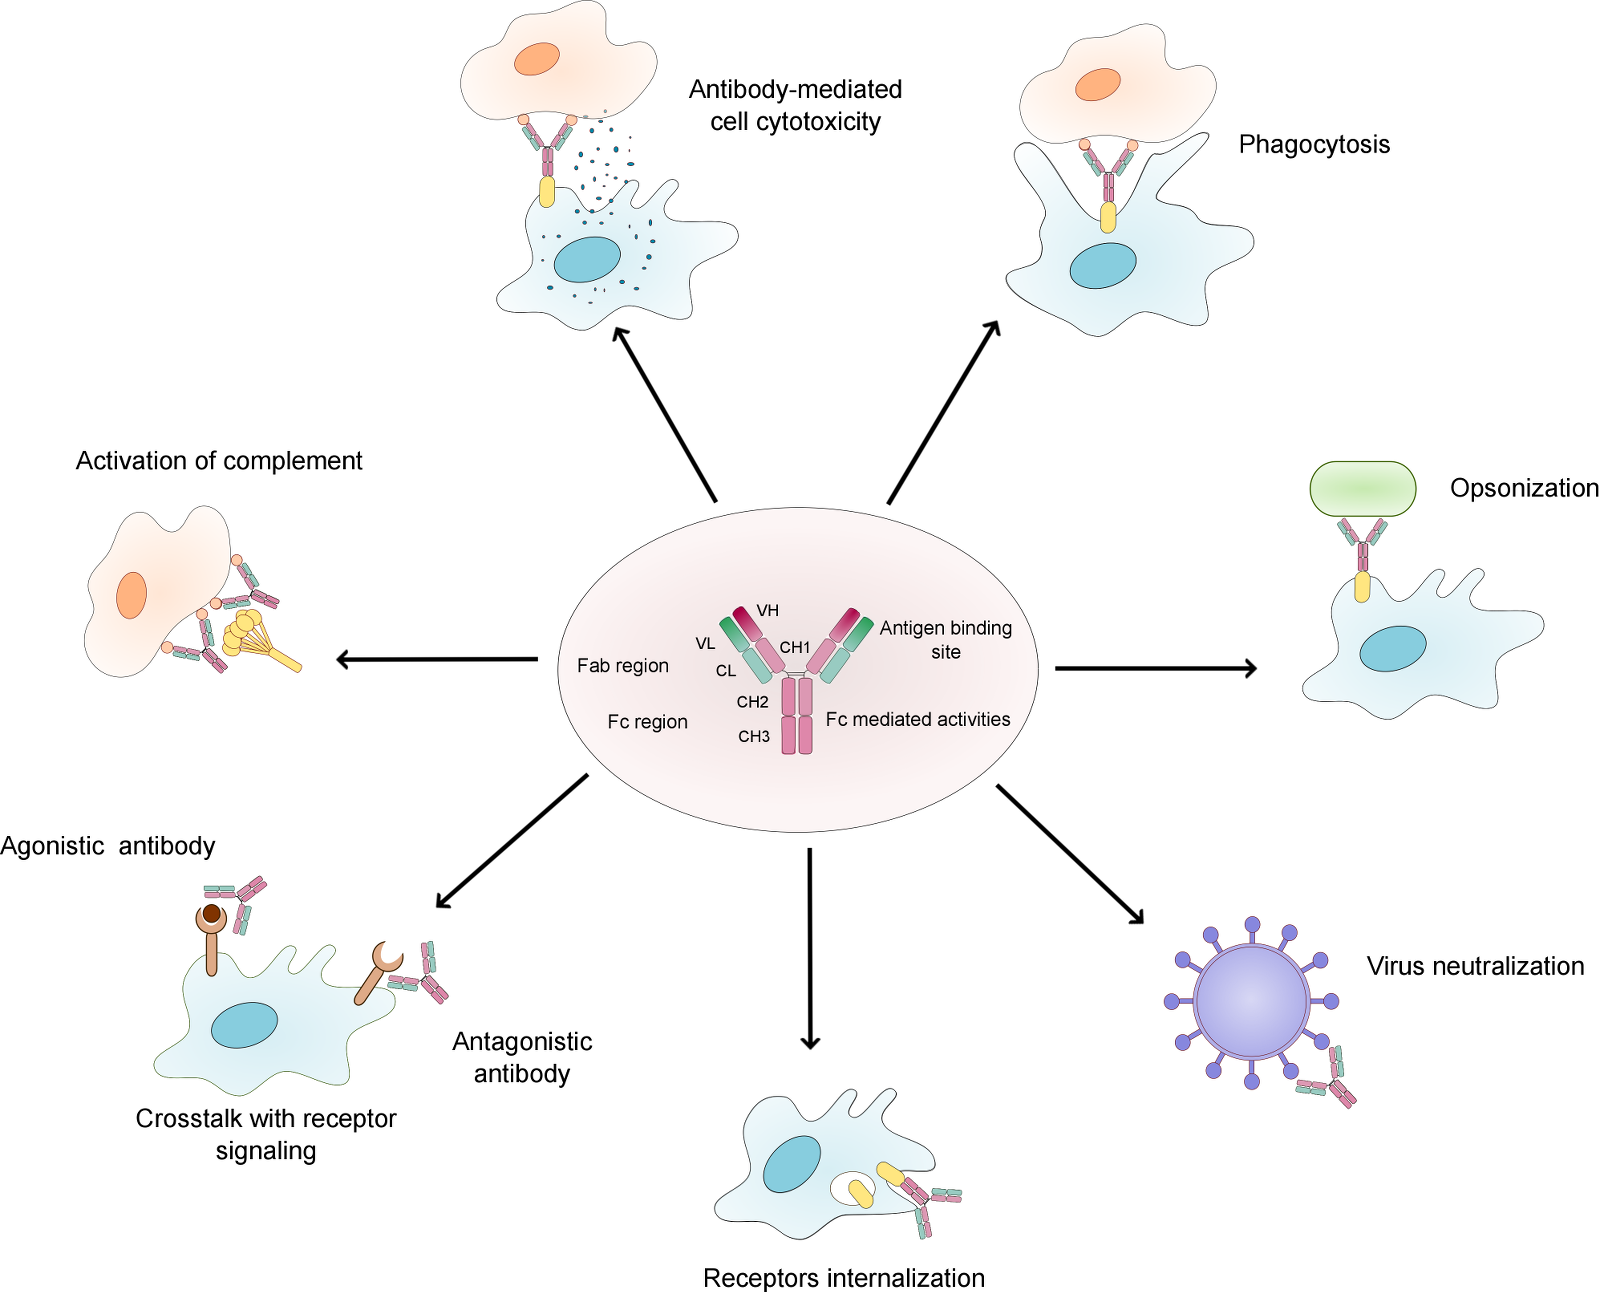 essay on effector functions of antibodies Engineering of fragment crystallizable (fc) domains of therapeutic immunoglobulin (igg) antibodies to eliminate their immune effector functions while retaining other fc characteristics has numerous applications, including blocking antigens on fc gamma (fcγ) receptor-expressing immune cells.